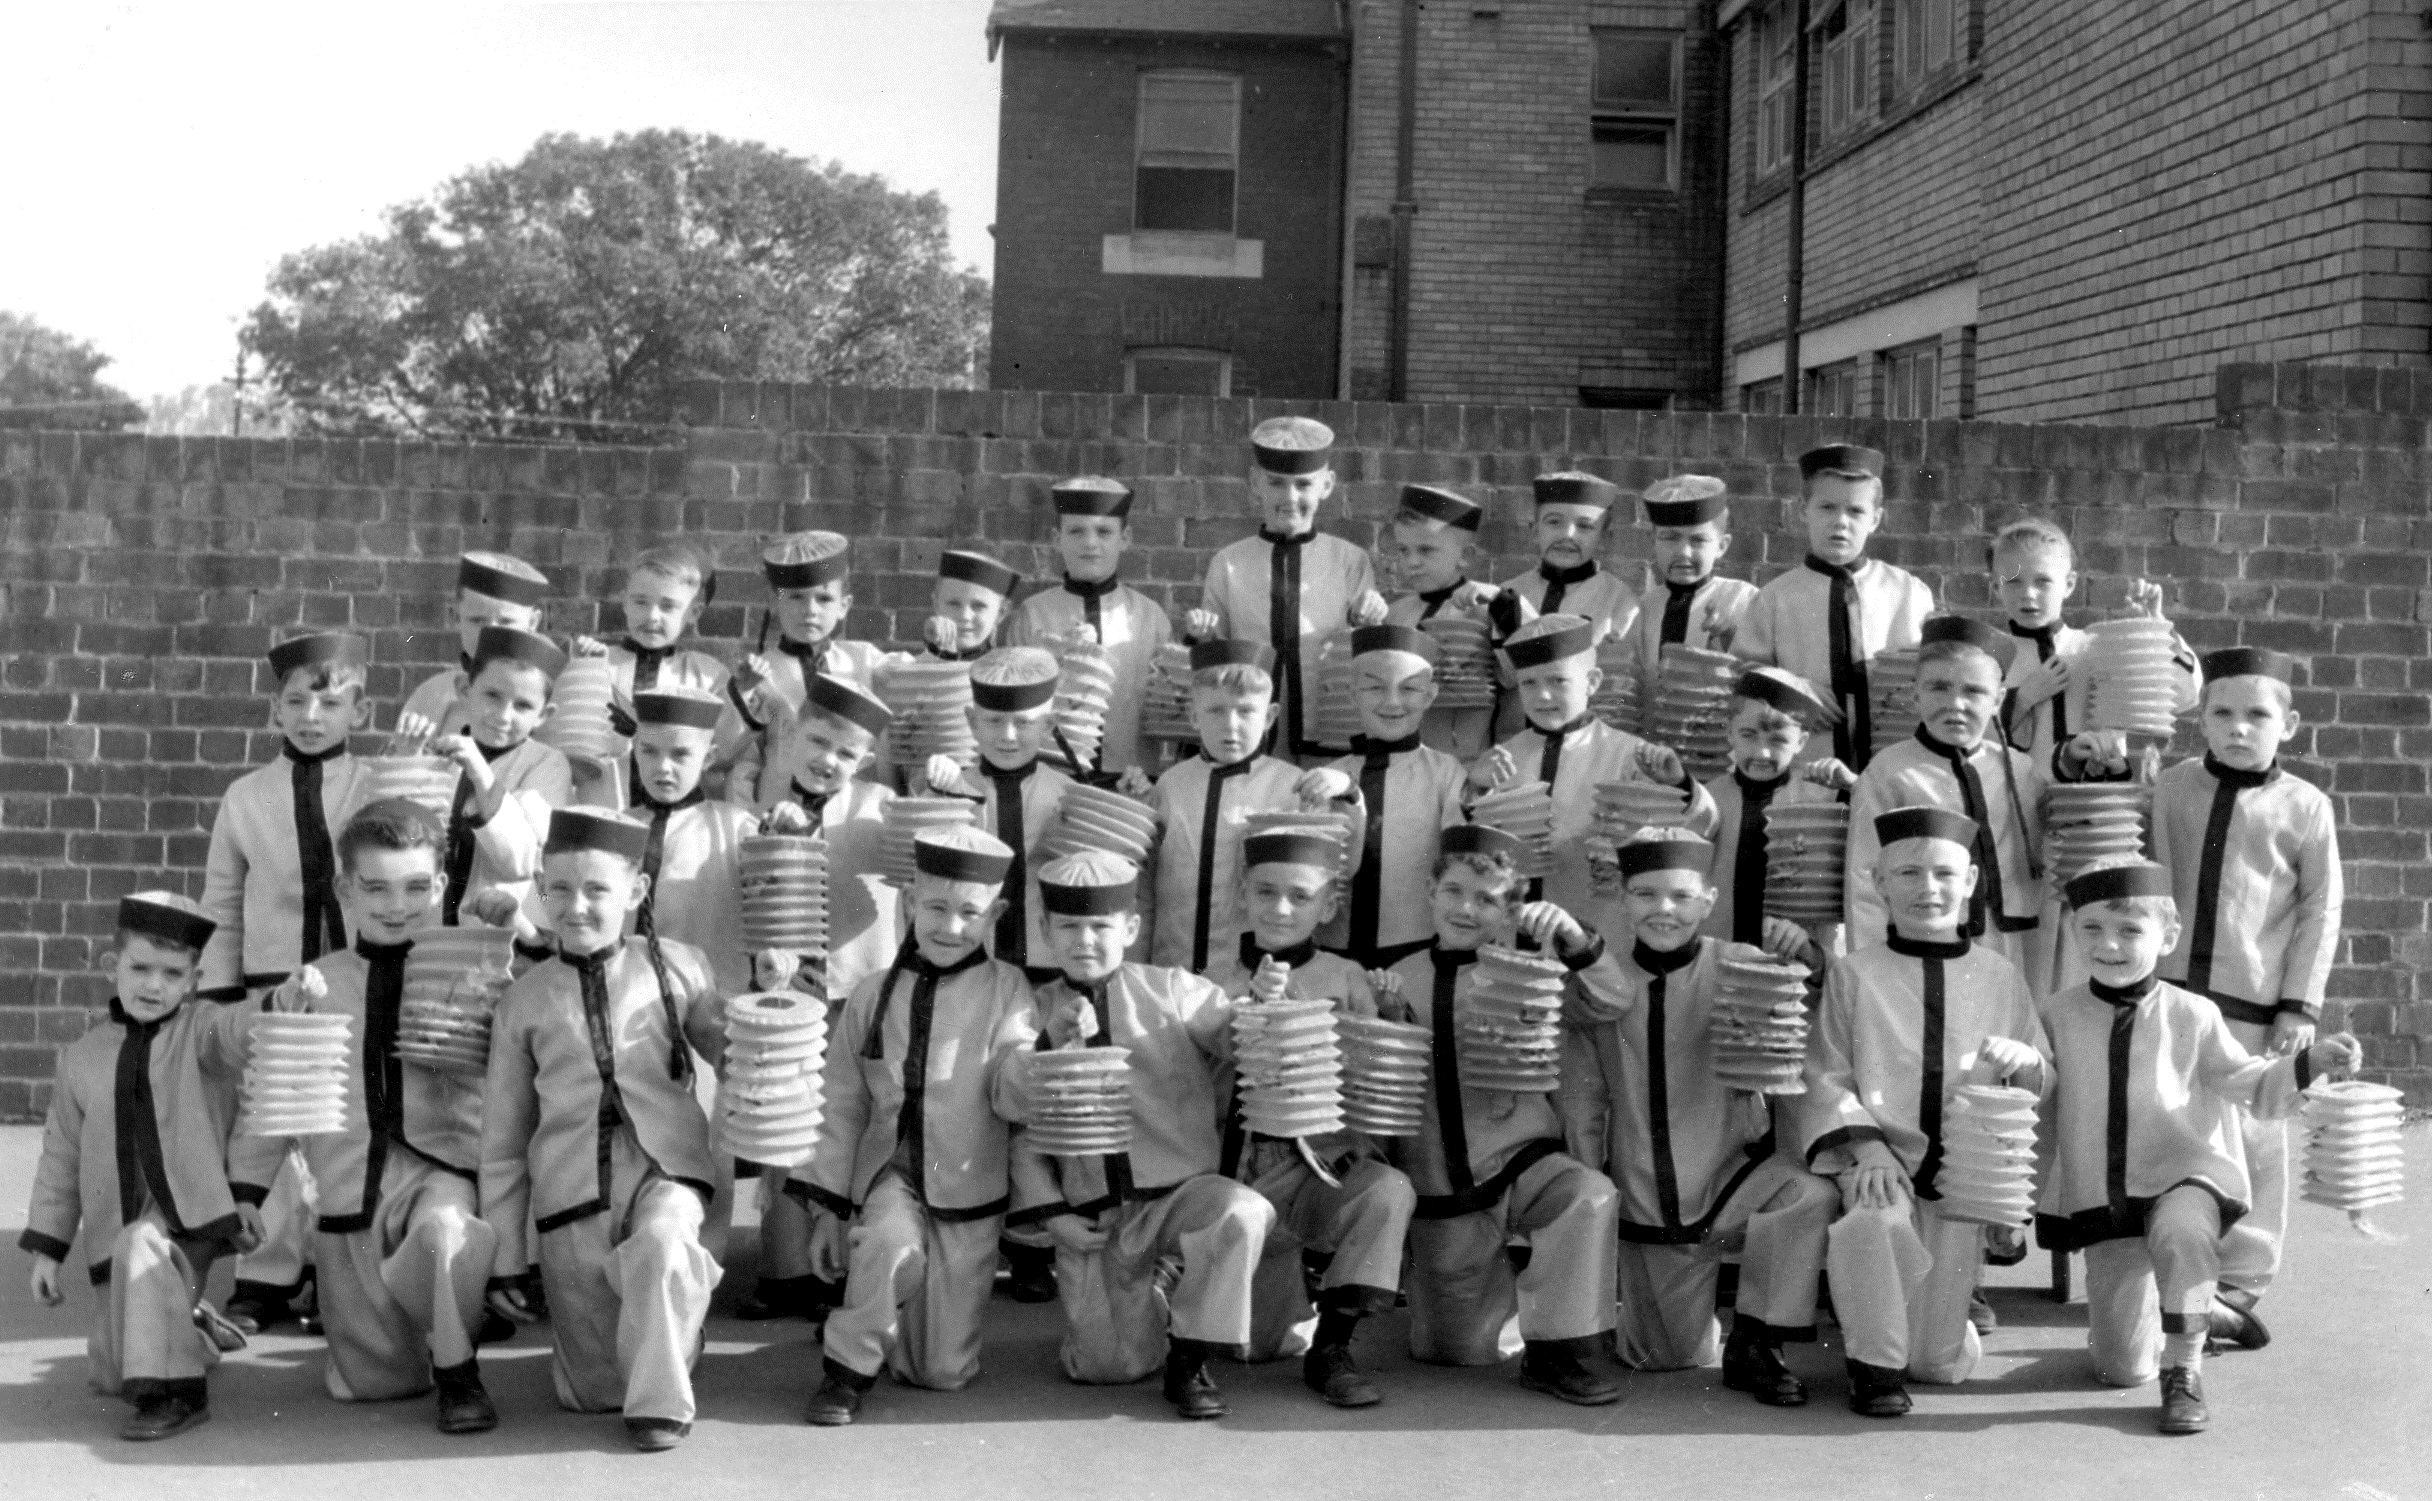 St James Year 2 pupils are pictured in 1956